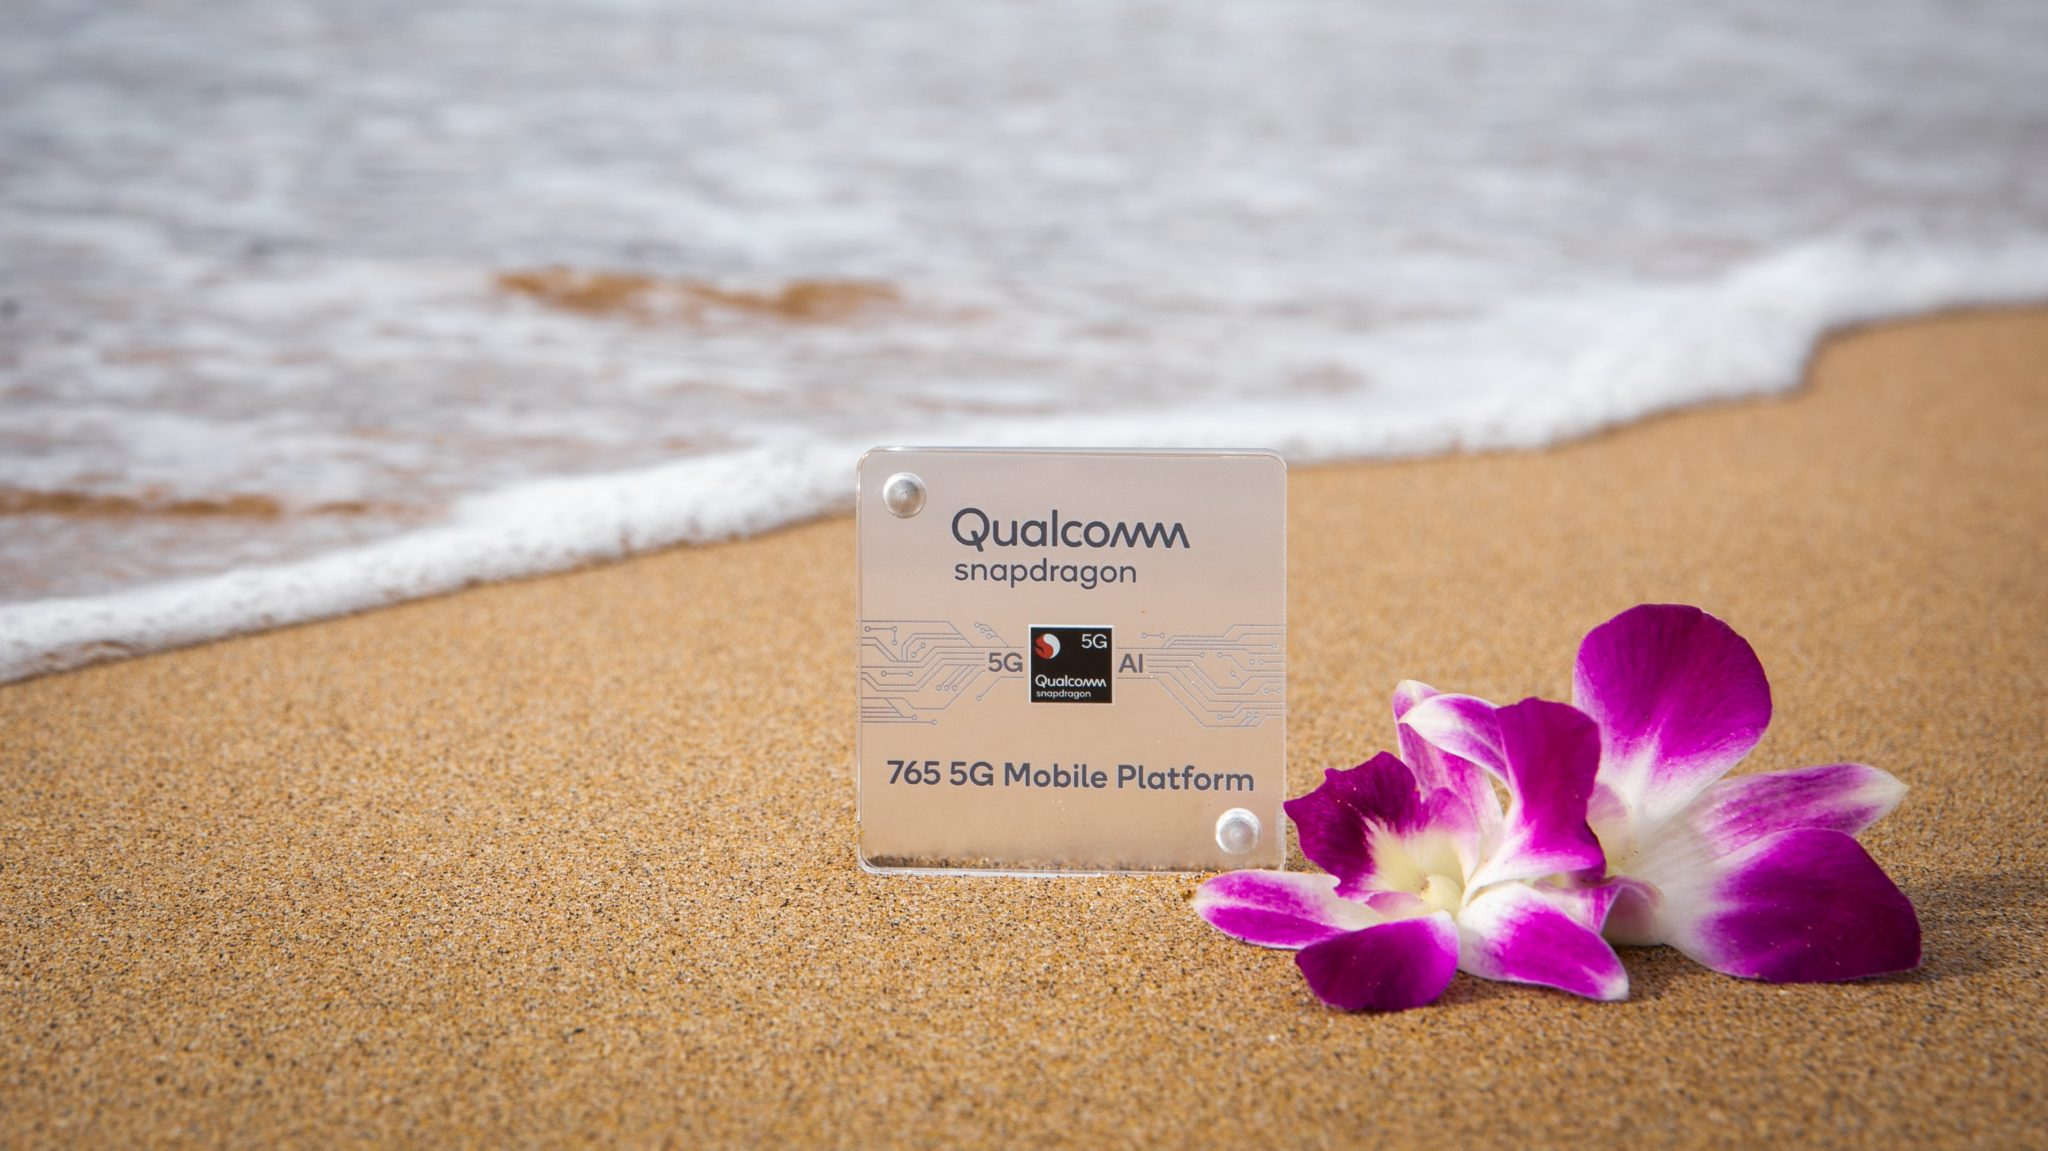 Qualcomm snapdragon 765 5g mobile platform chip case outdoors in maui scaled